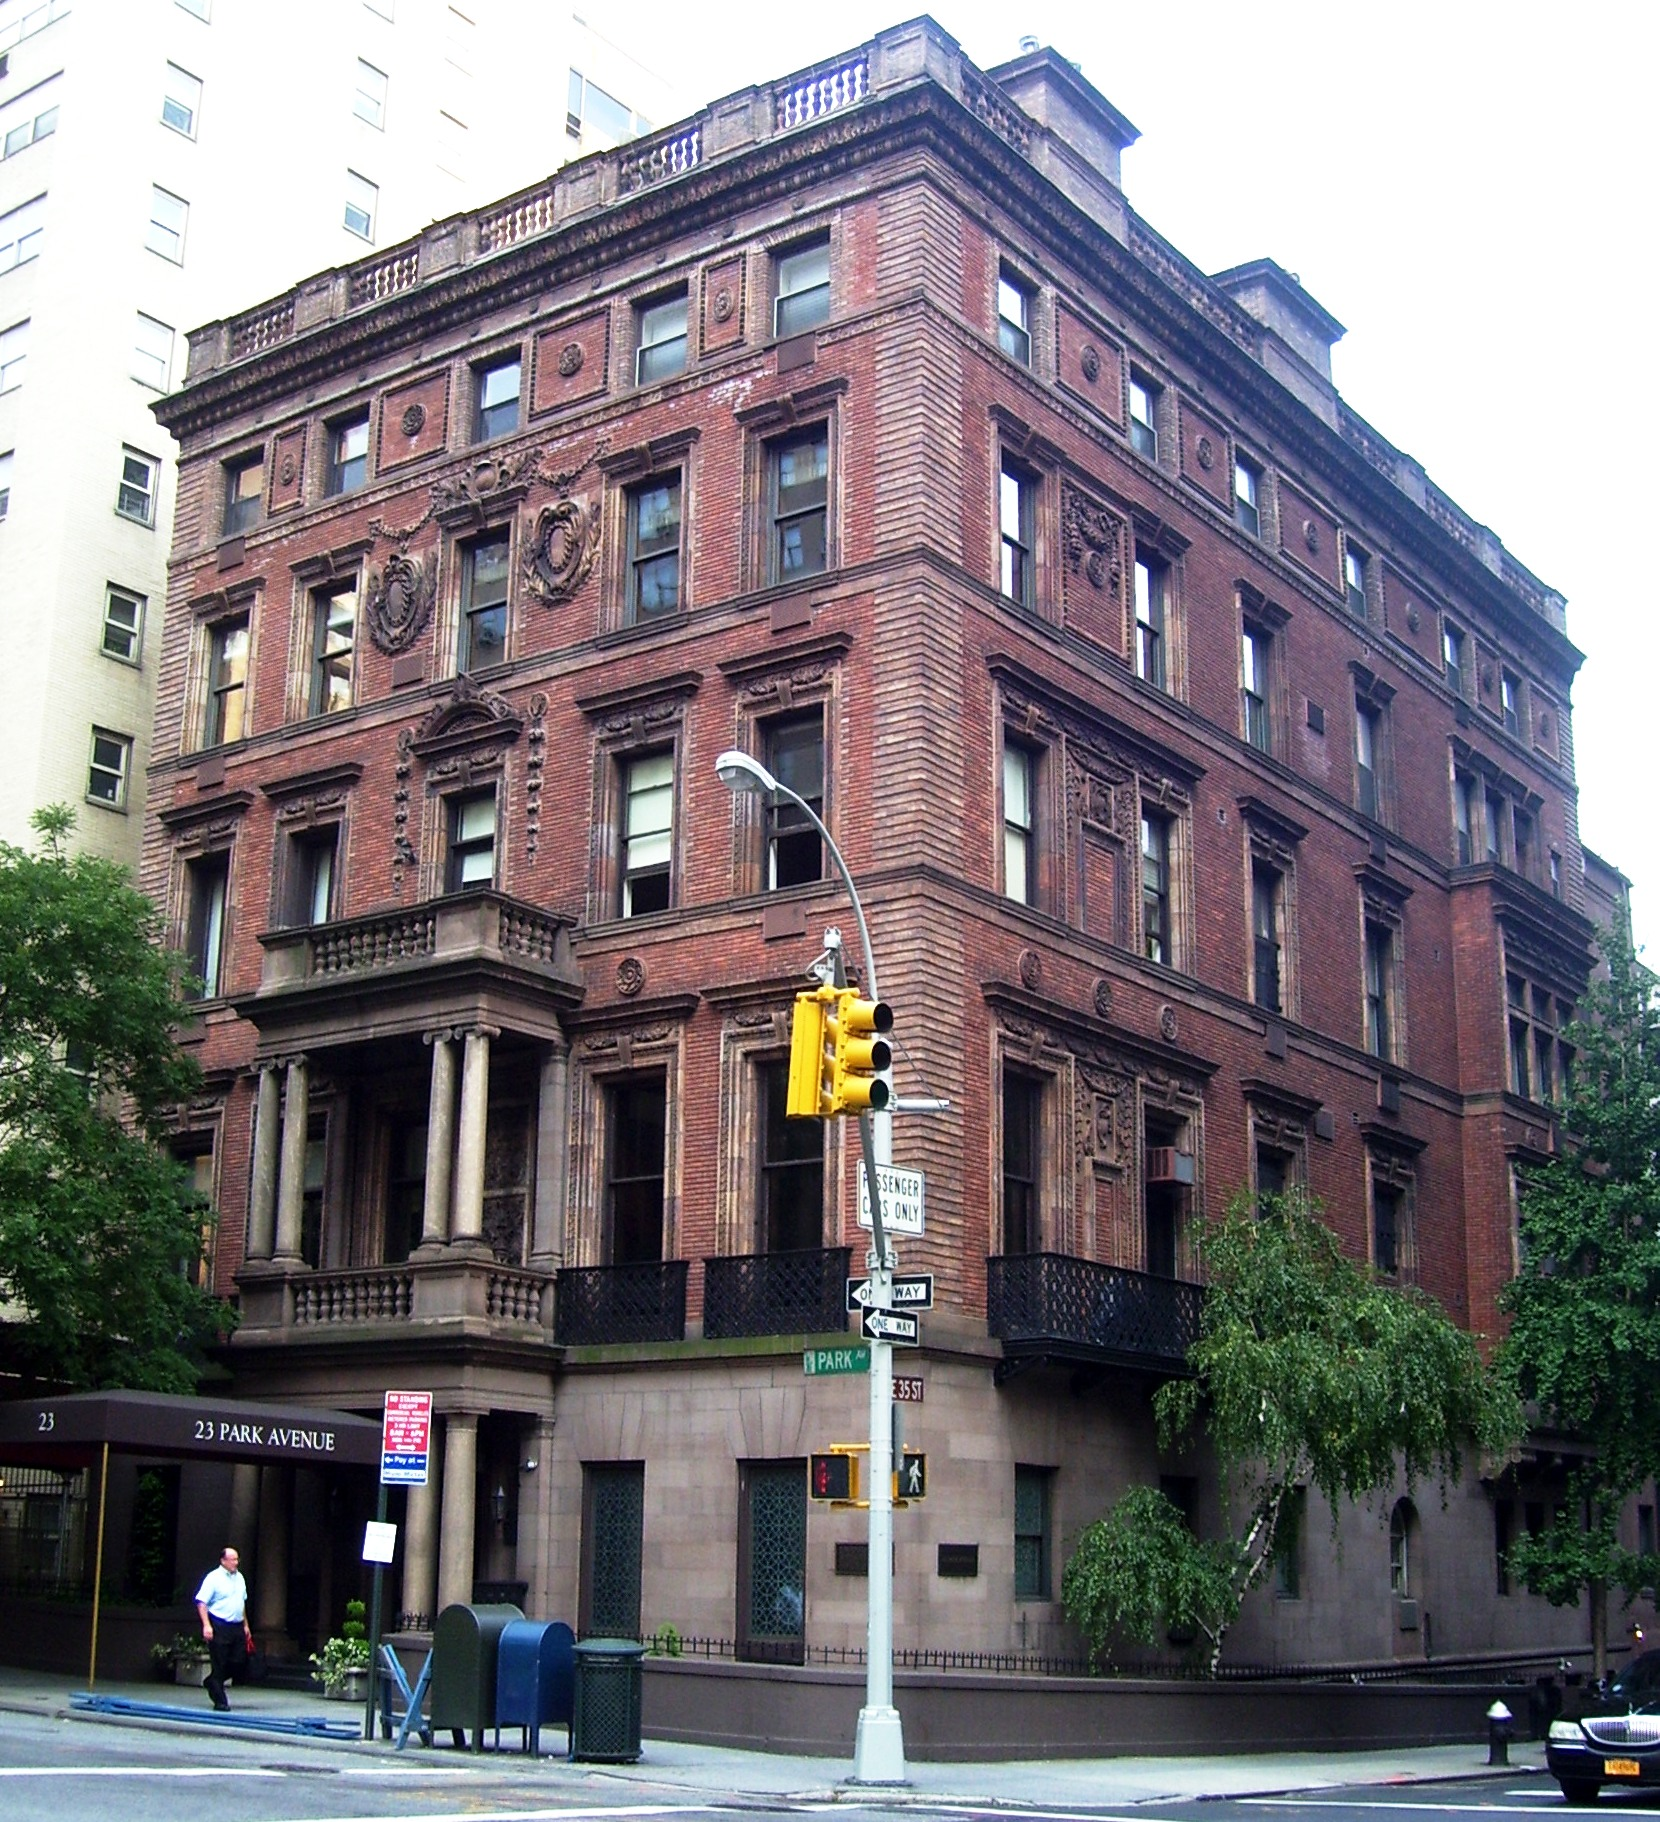 Nyc Apartment Complexes: File:23 Park Avenue Robb House.jpg